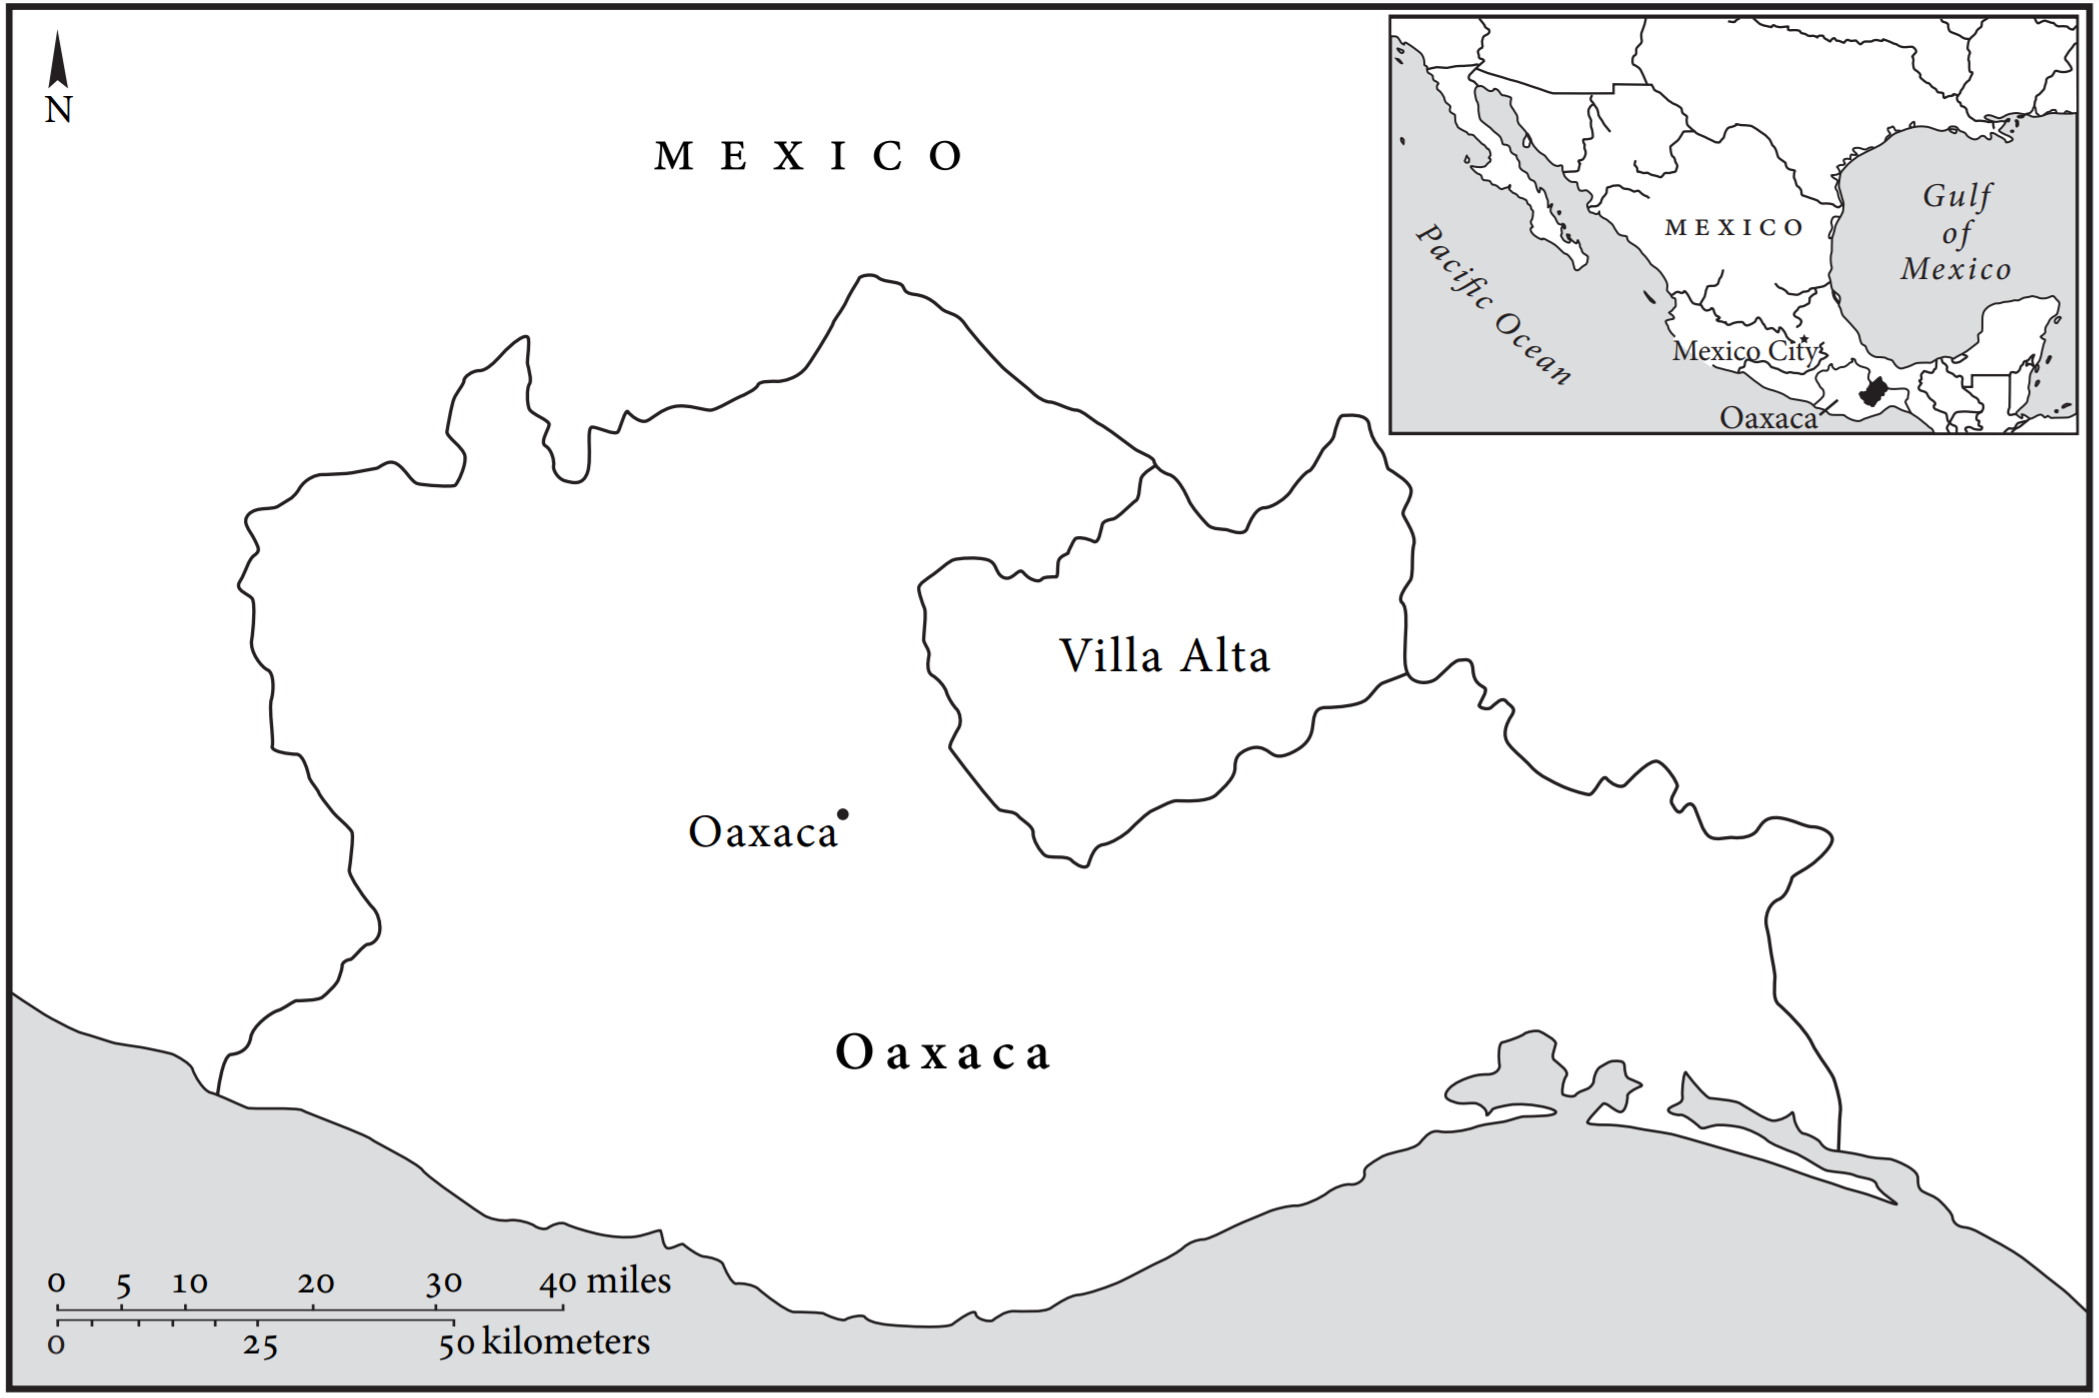 map 1 villa alta oaxaca mexico credit yanna yannakakis the art of being in between native intermediaries indian identity and local rule in colonial